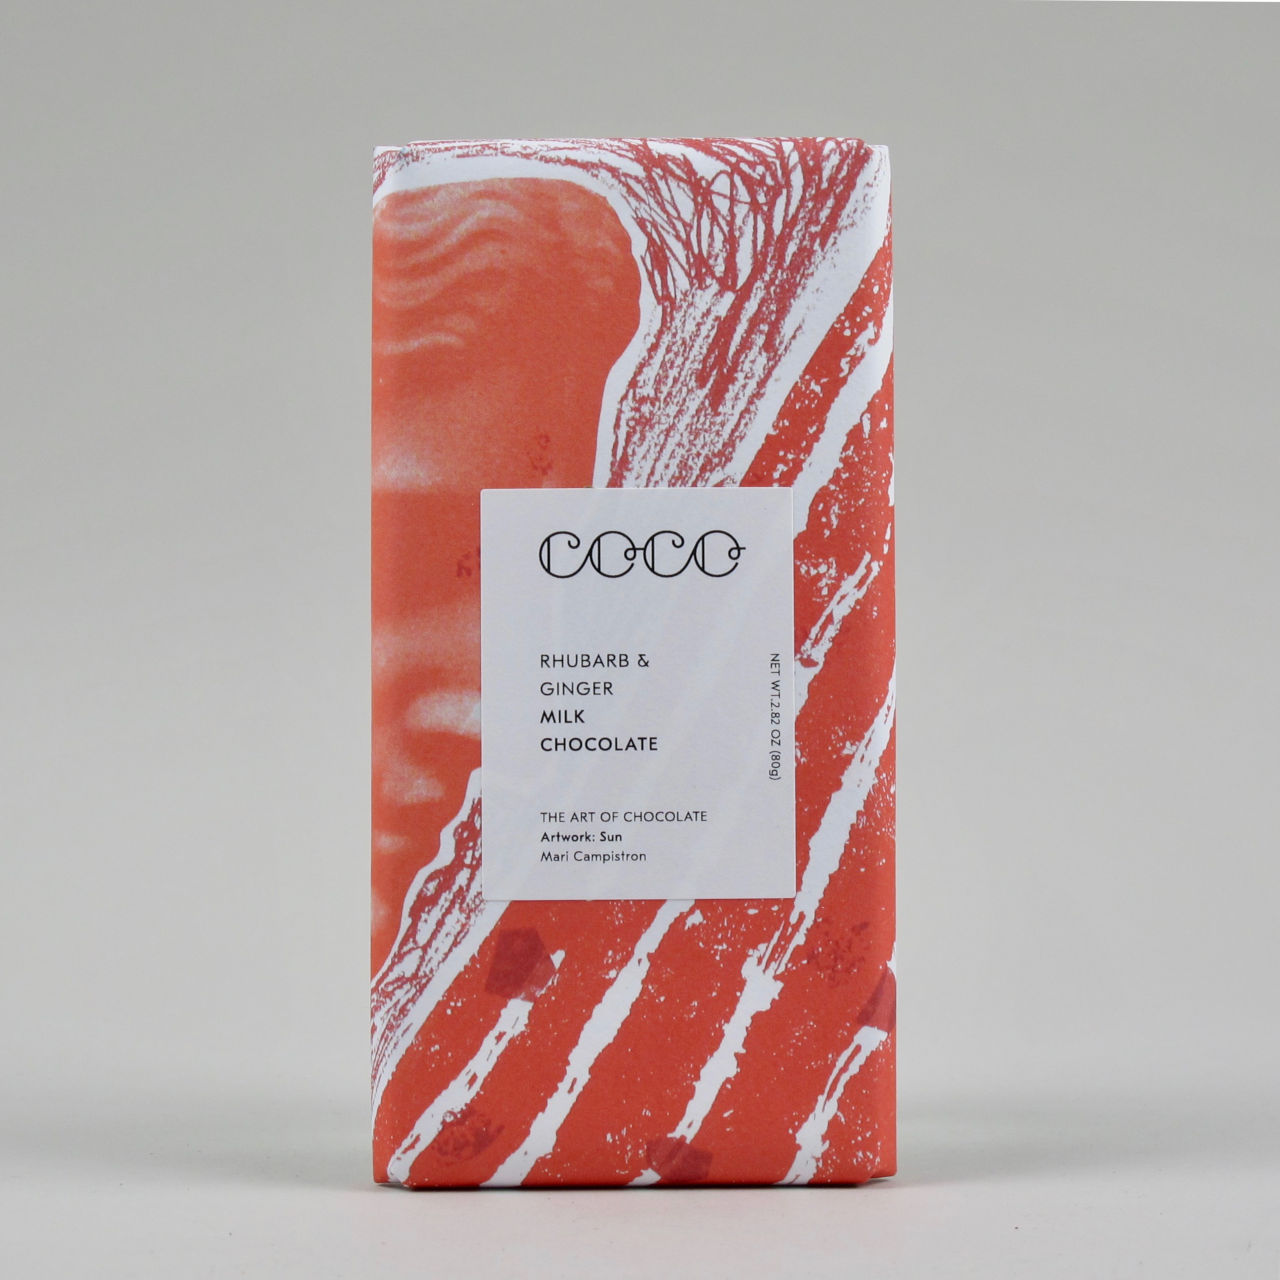 Rhubarb & Ginger Milk Chocolate